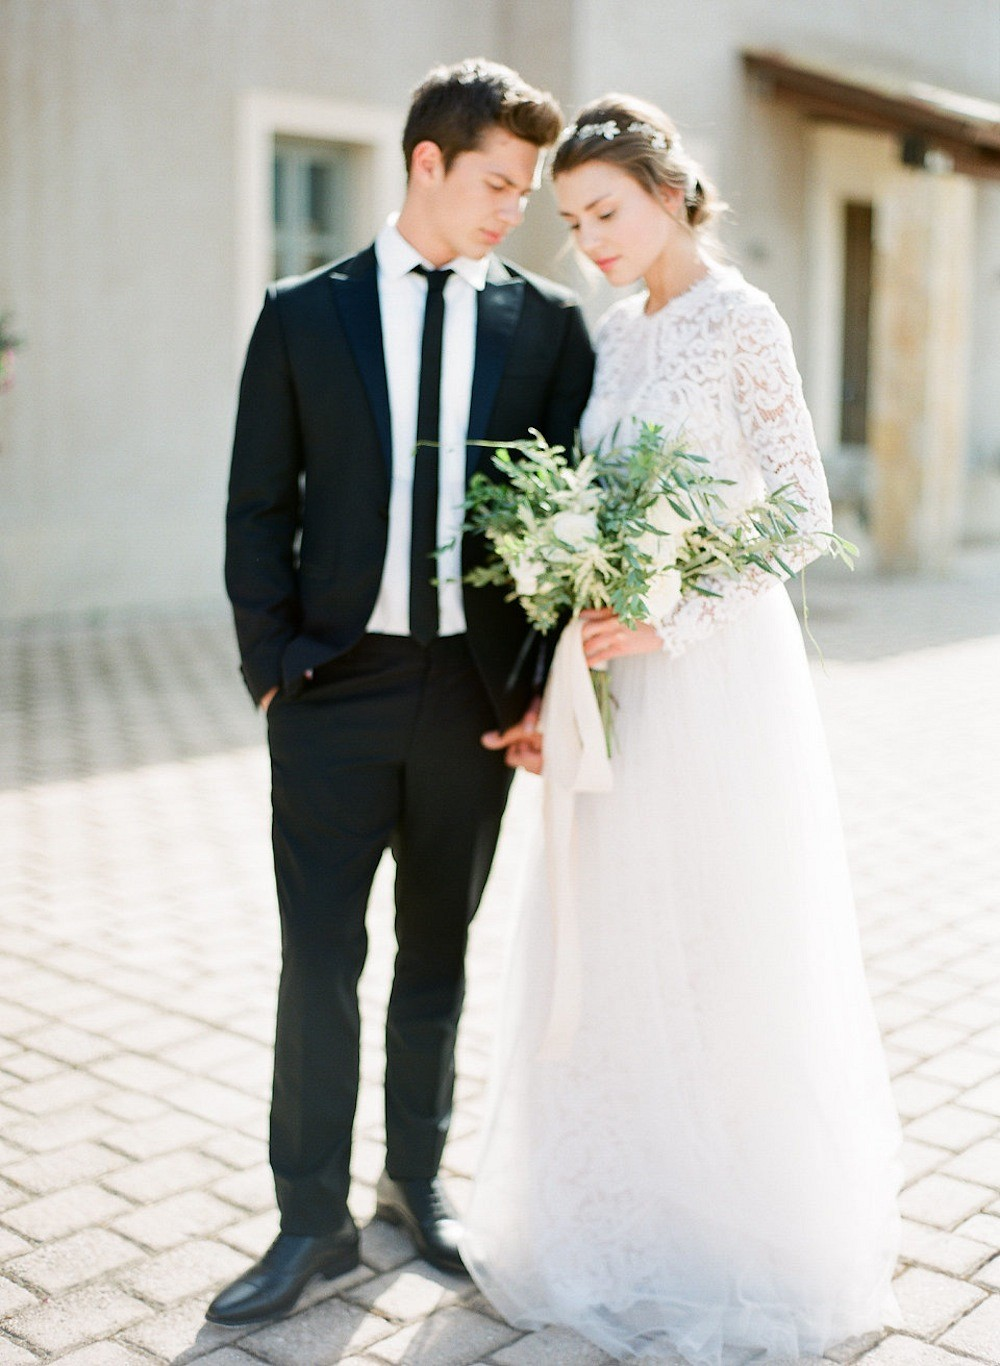 Rustic Estate Wedding Inspiration in Greece